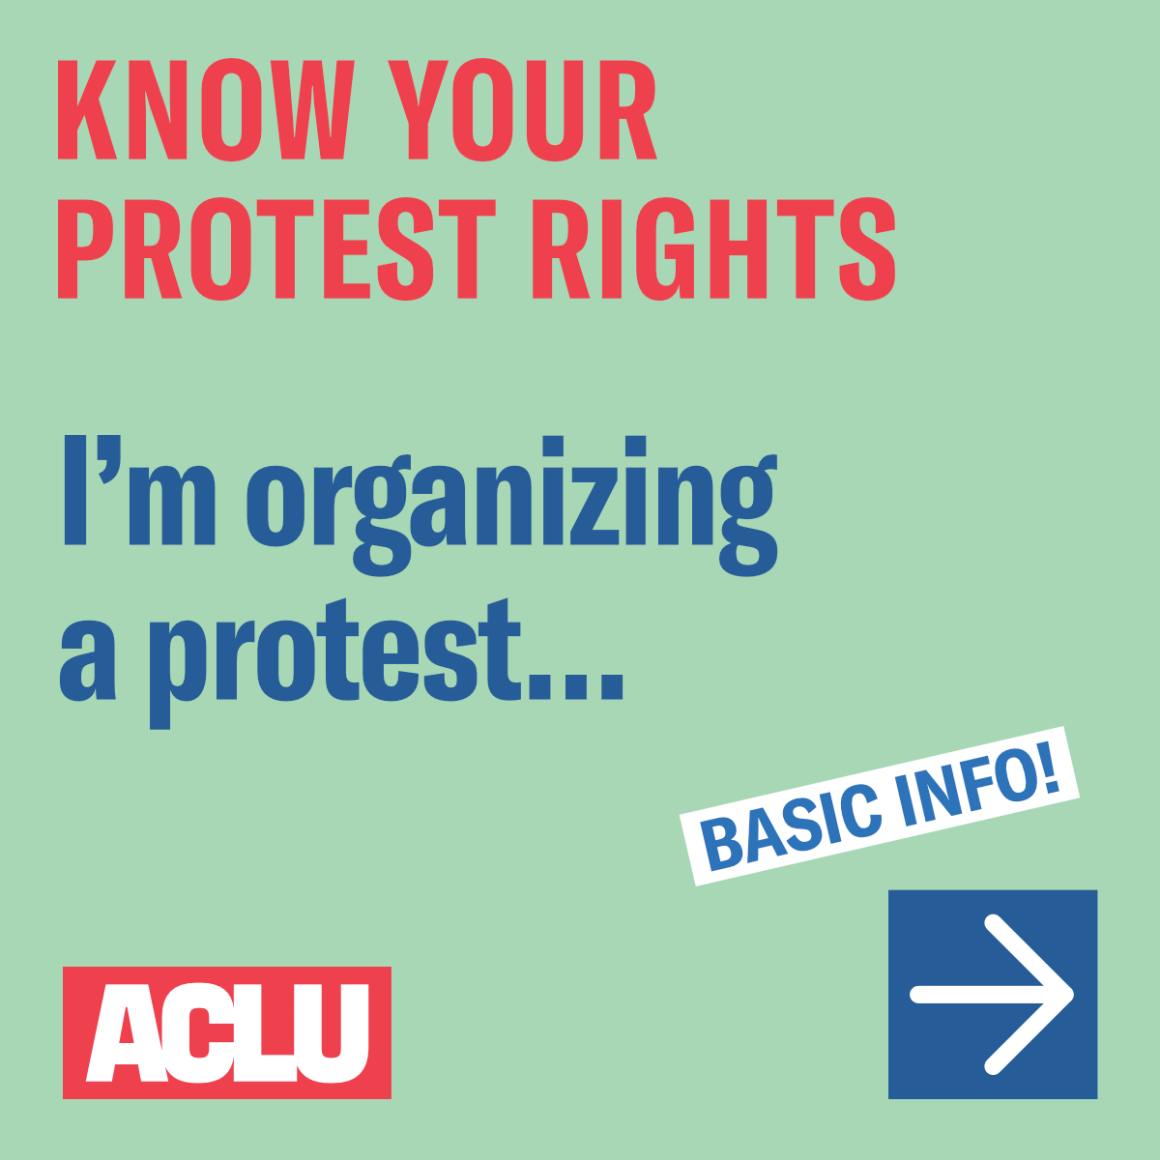 I'm organizing a protest